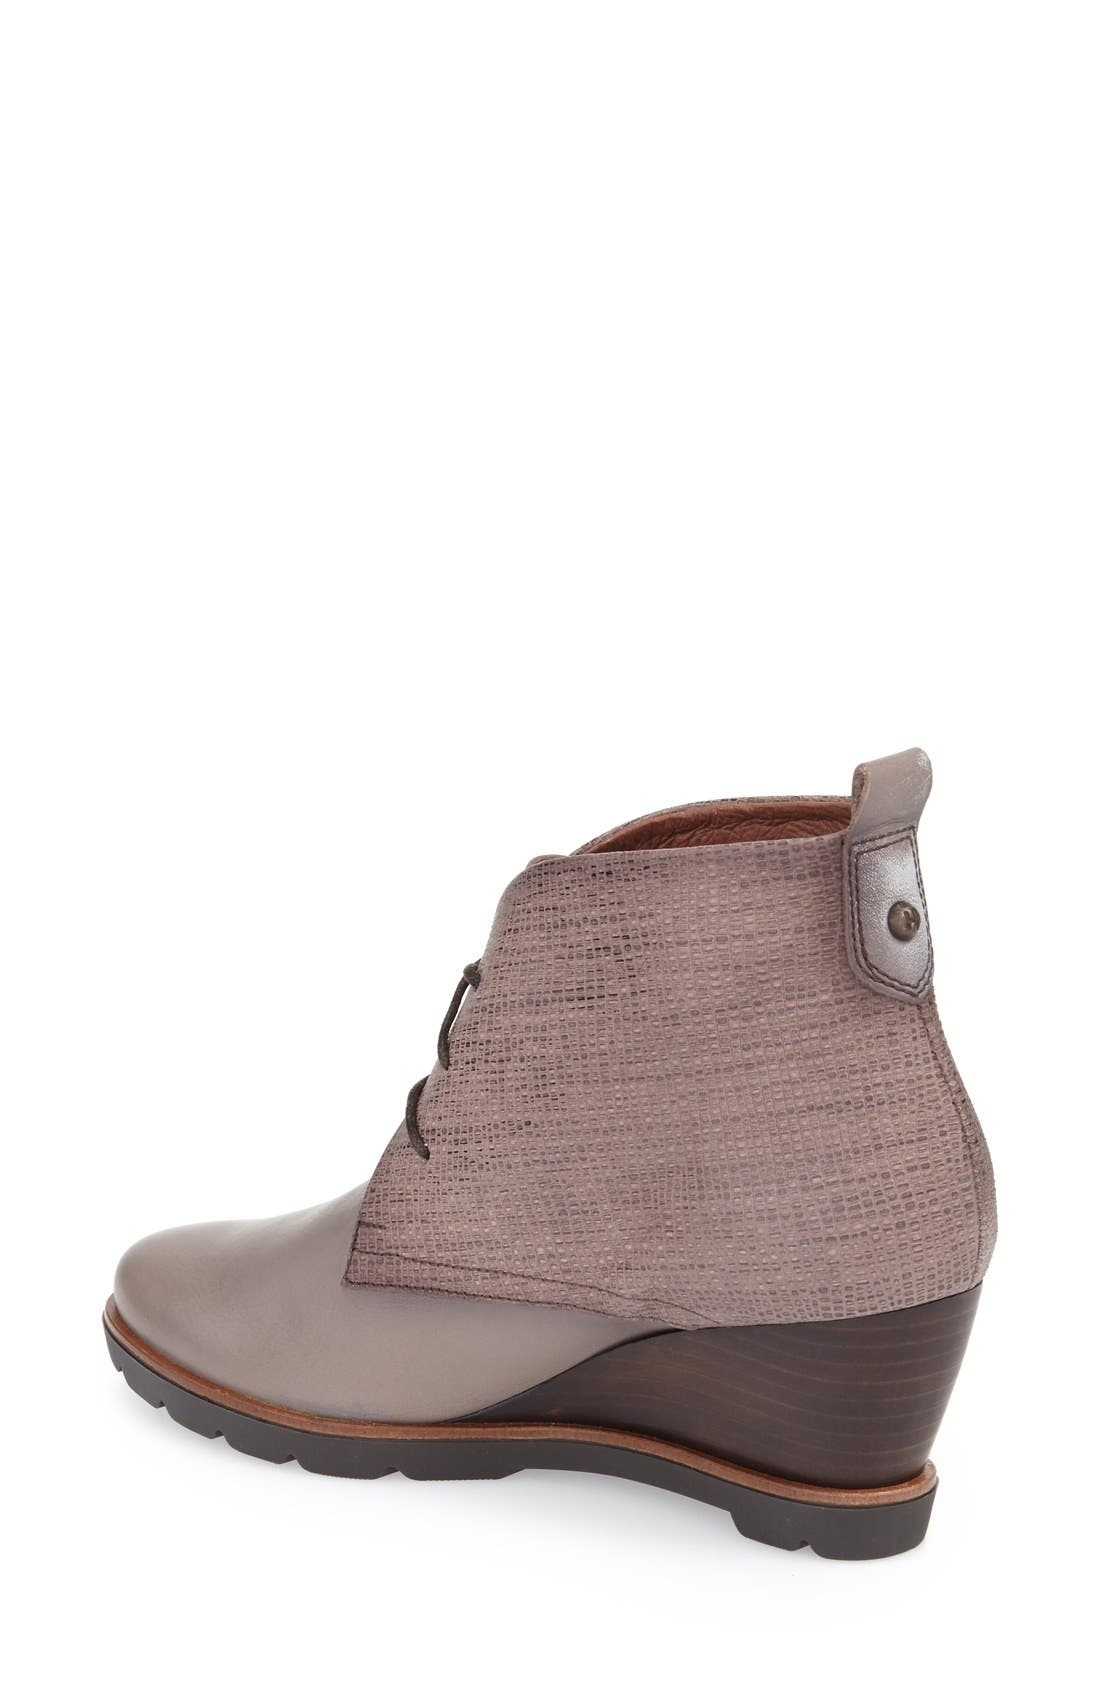 'Harmonie' Lace-Up Wedge Bootie,                             Alternate thumbnail 4, color,                             200